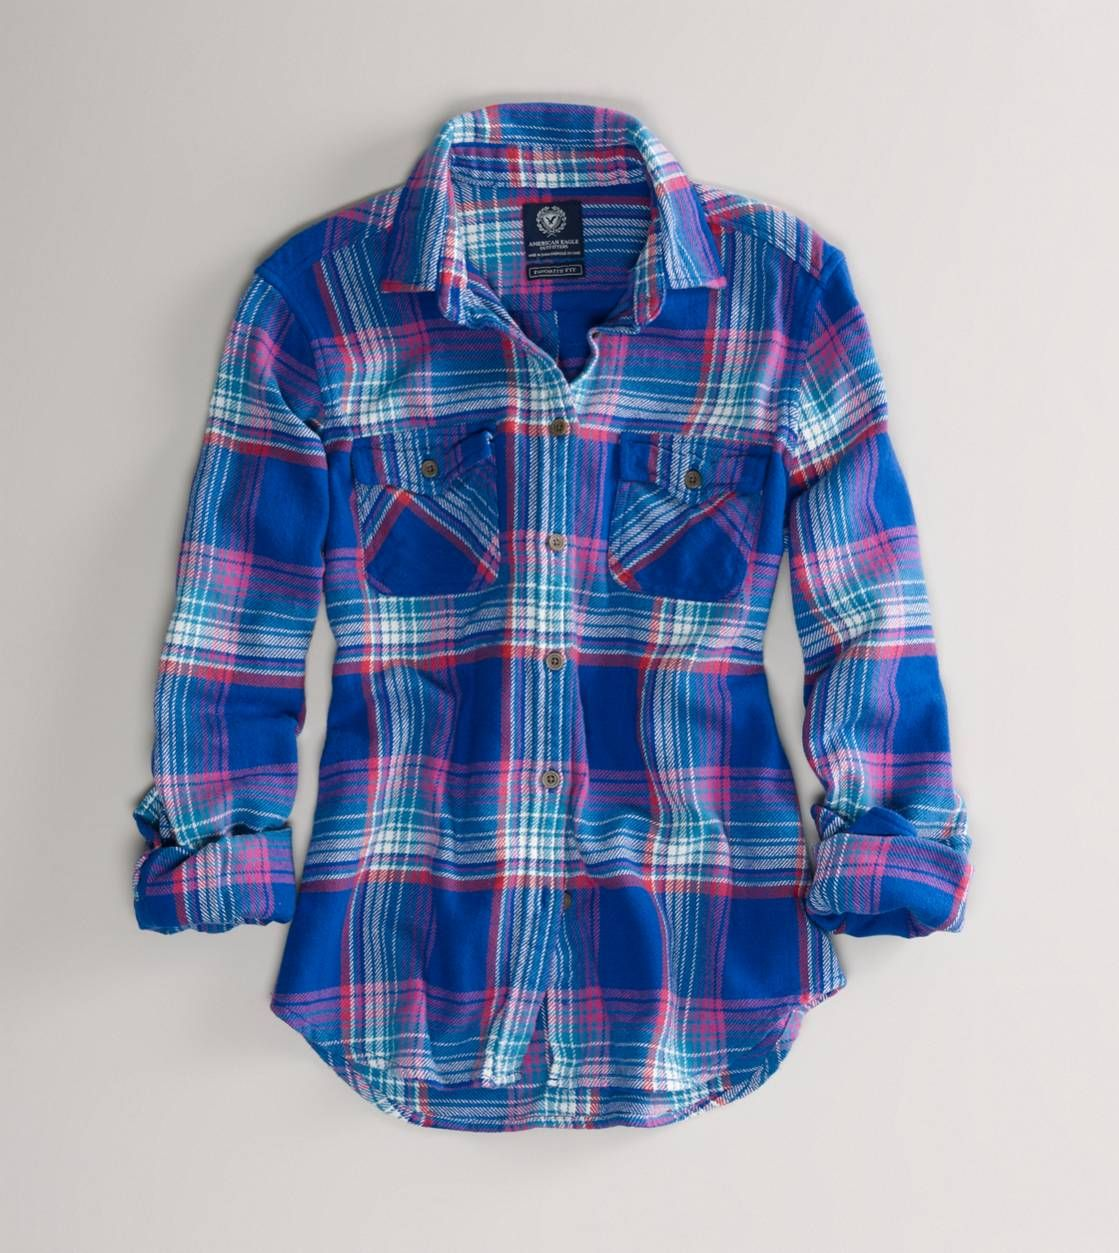 American Eagle Women S Flannel Shirt Just Picked This Up For 17